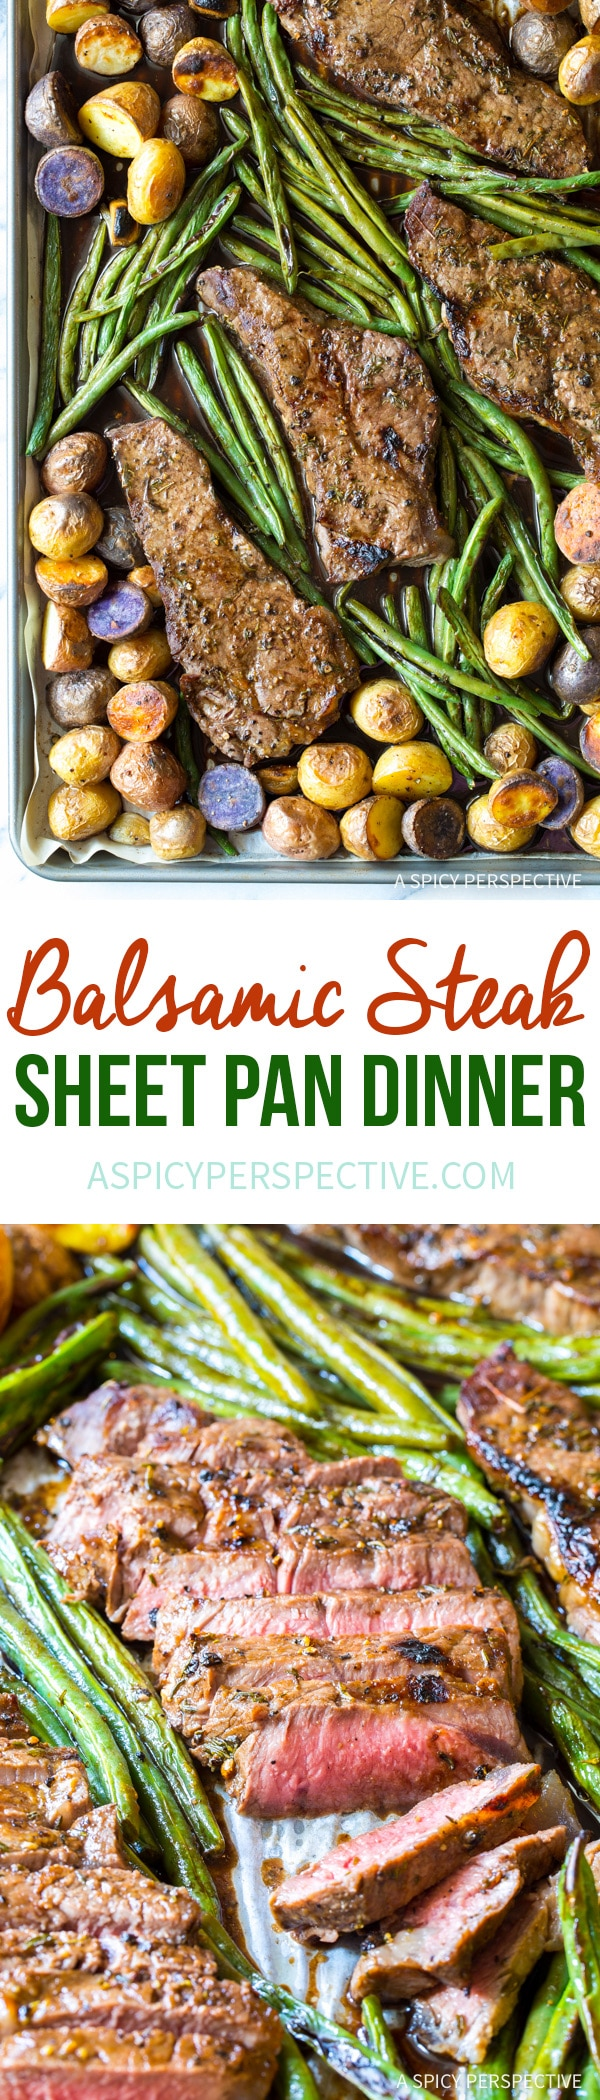 Easy Balsamic Steak Sheet Pan Dinner